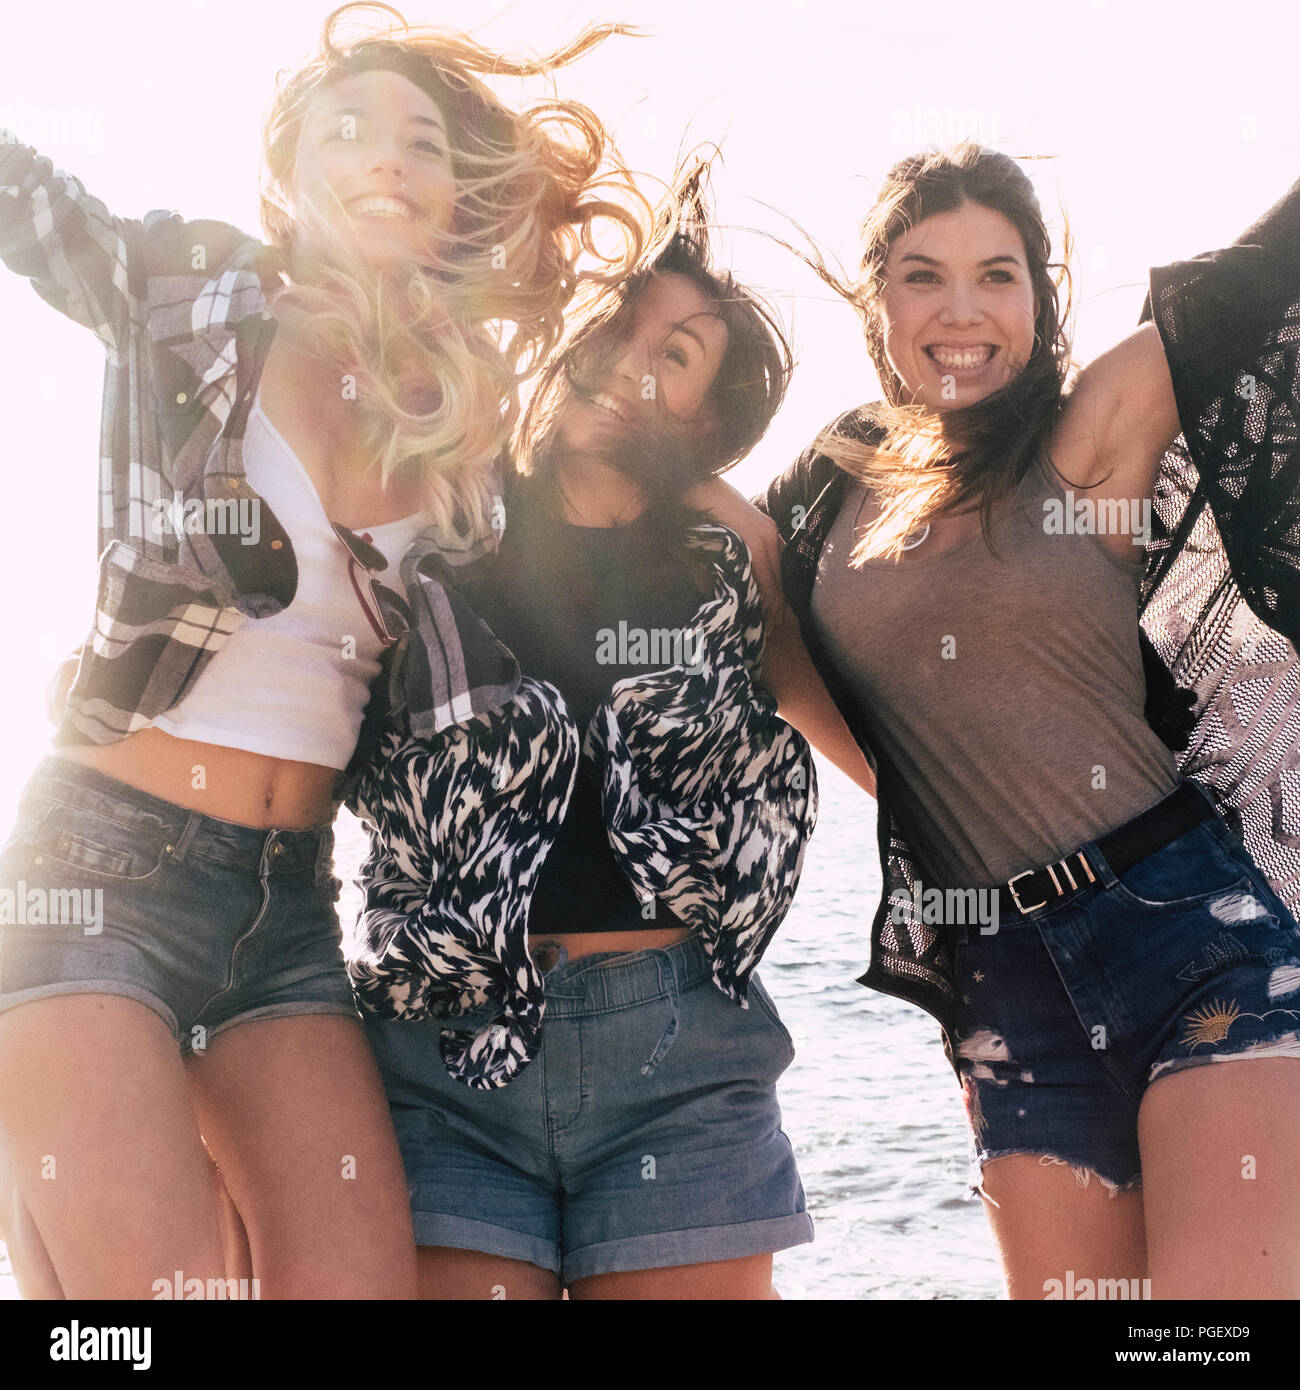 group of cheerful and happy girls jumping with happiness and enjoying friendship and youthness. outdoor leisure activity for beautiful young females h - Stock Image